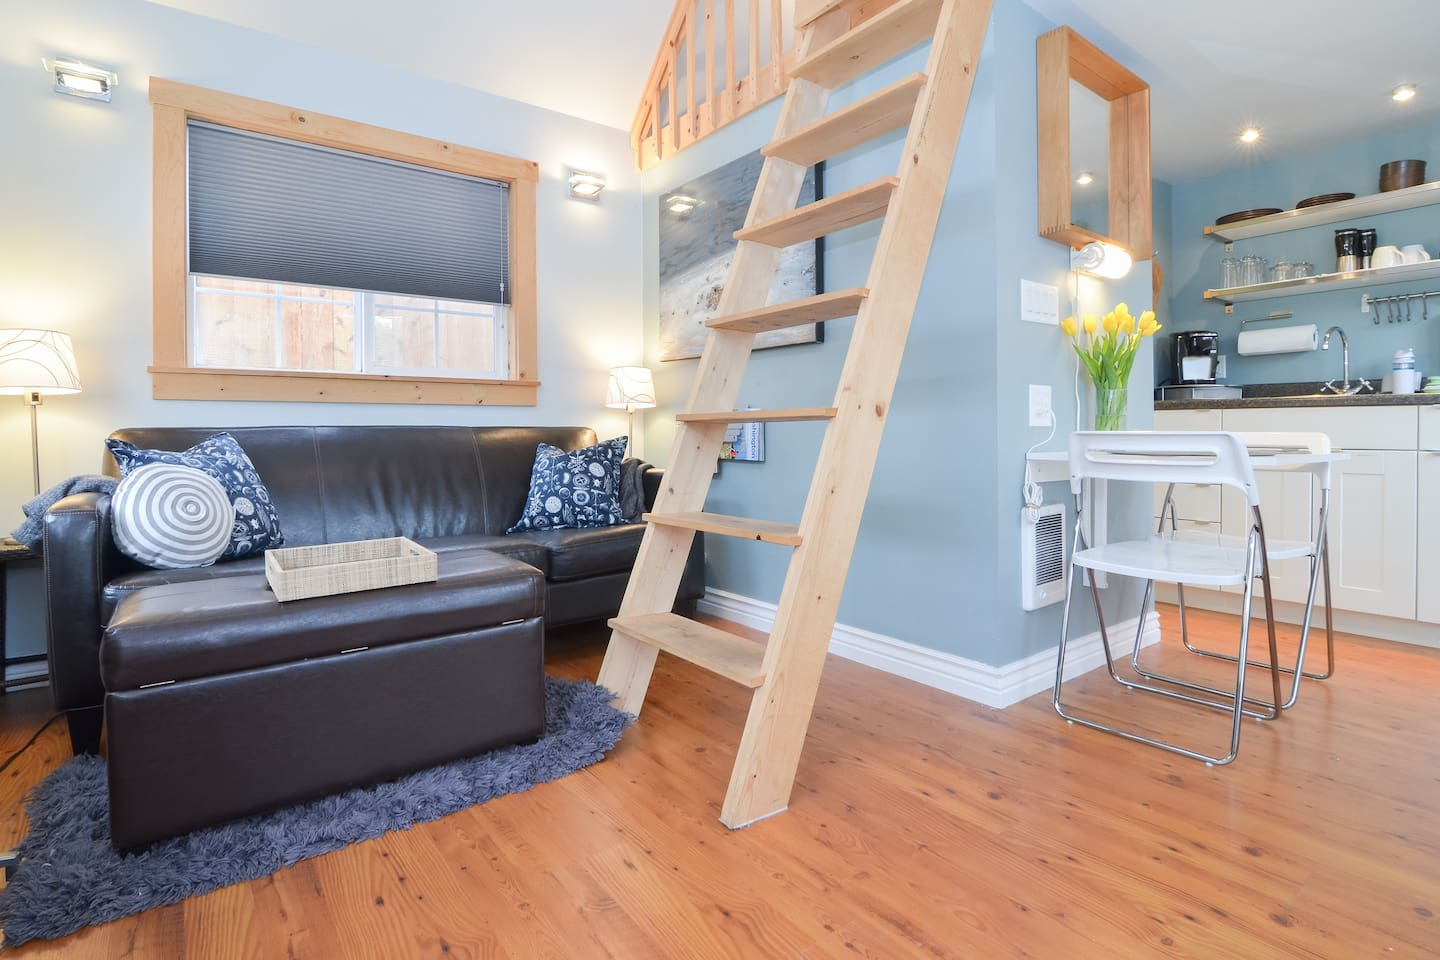 Very open and modern living space...note the ladder to the loft bed area.